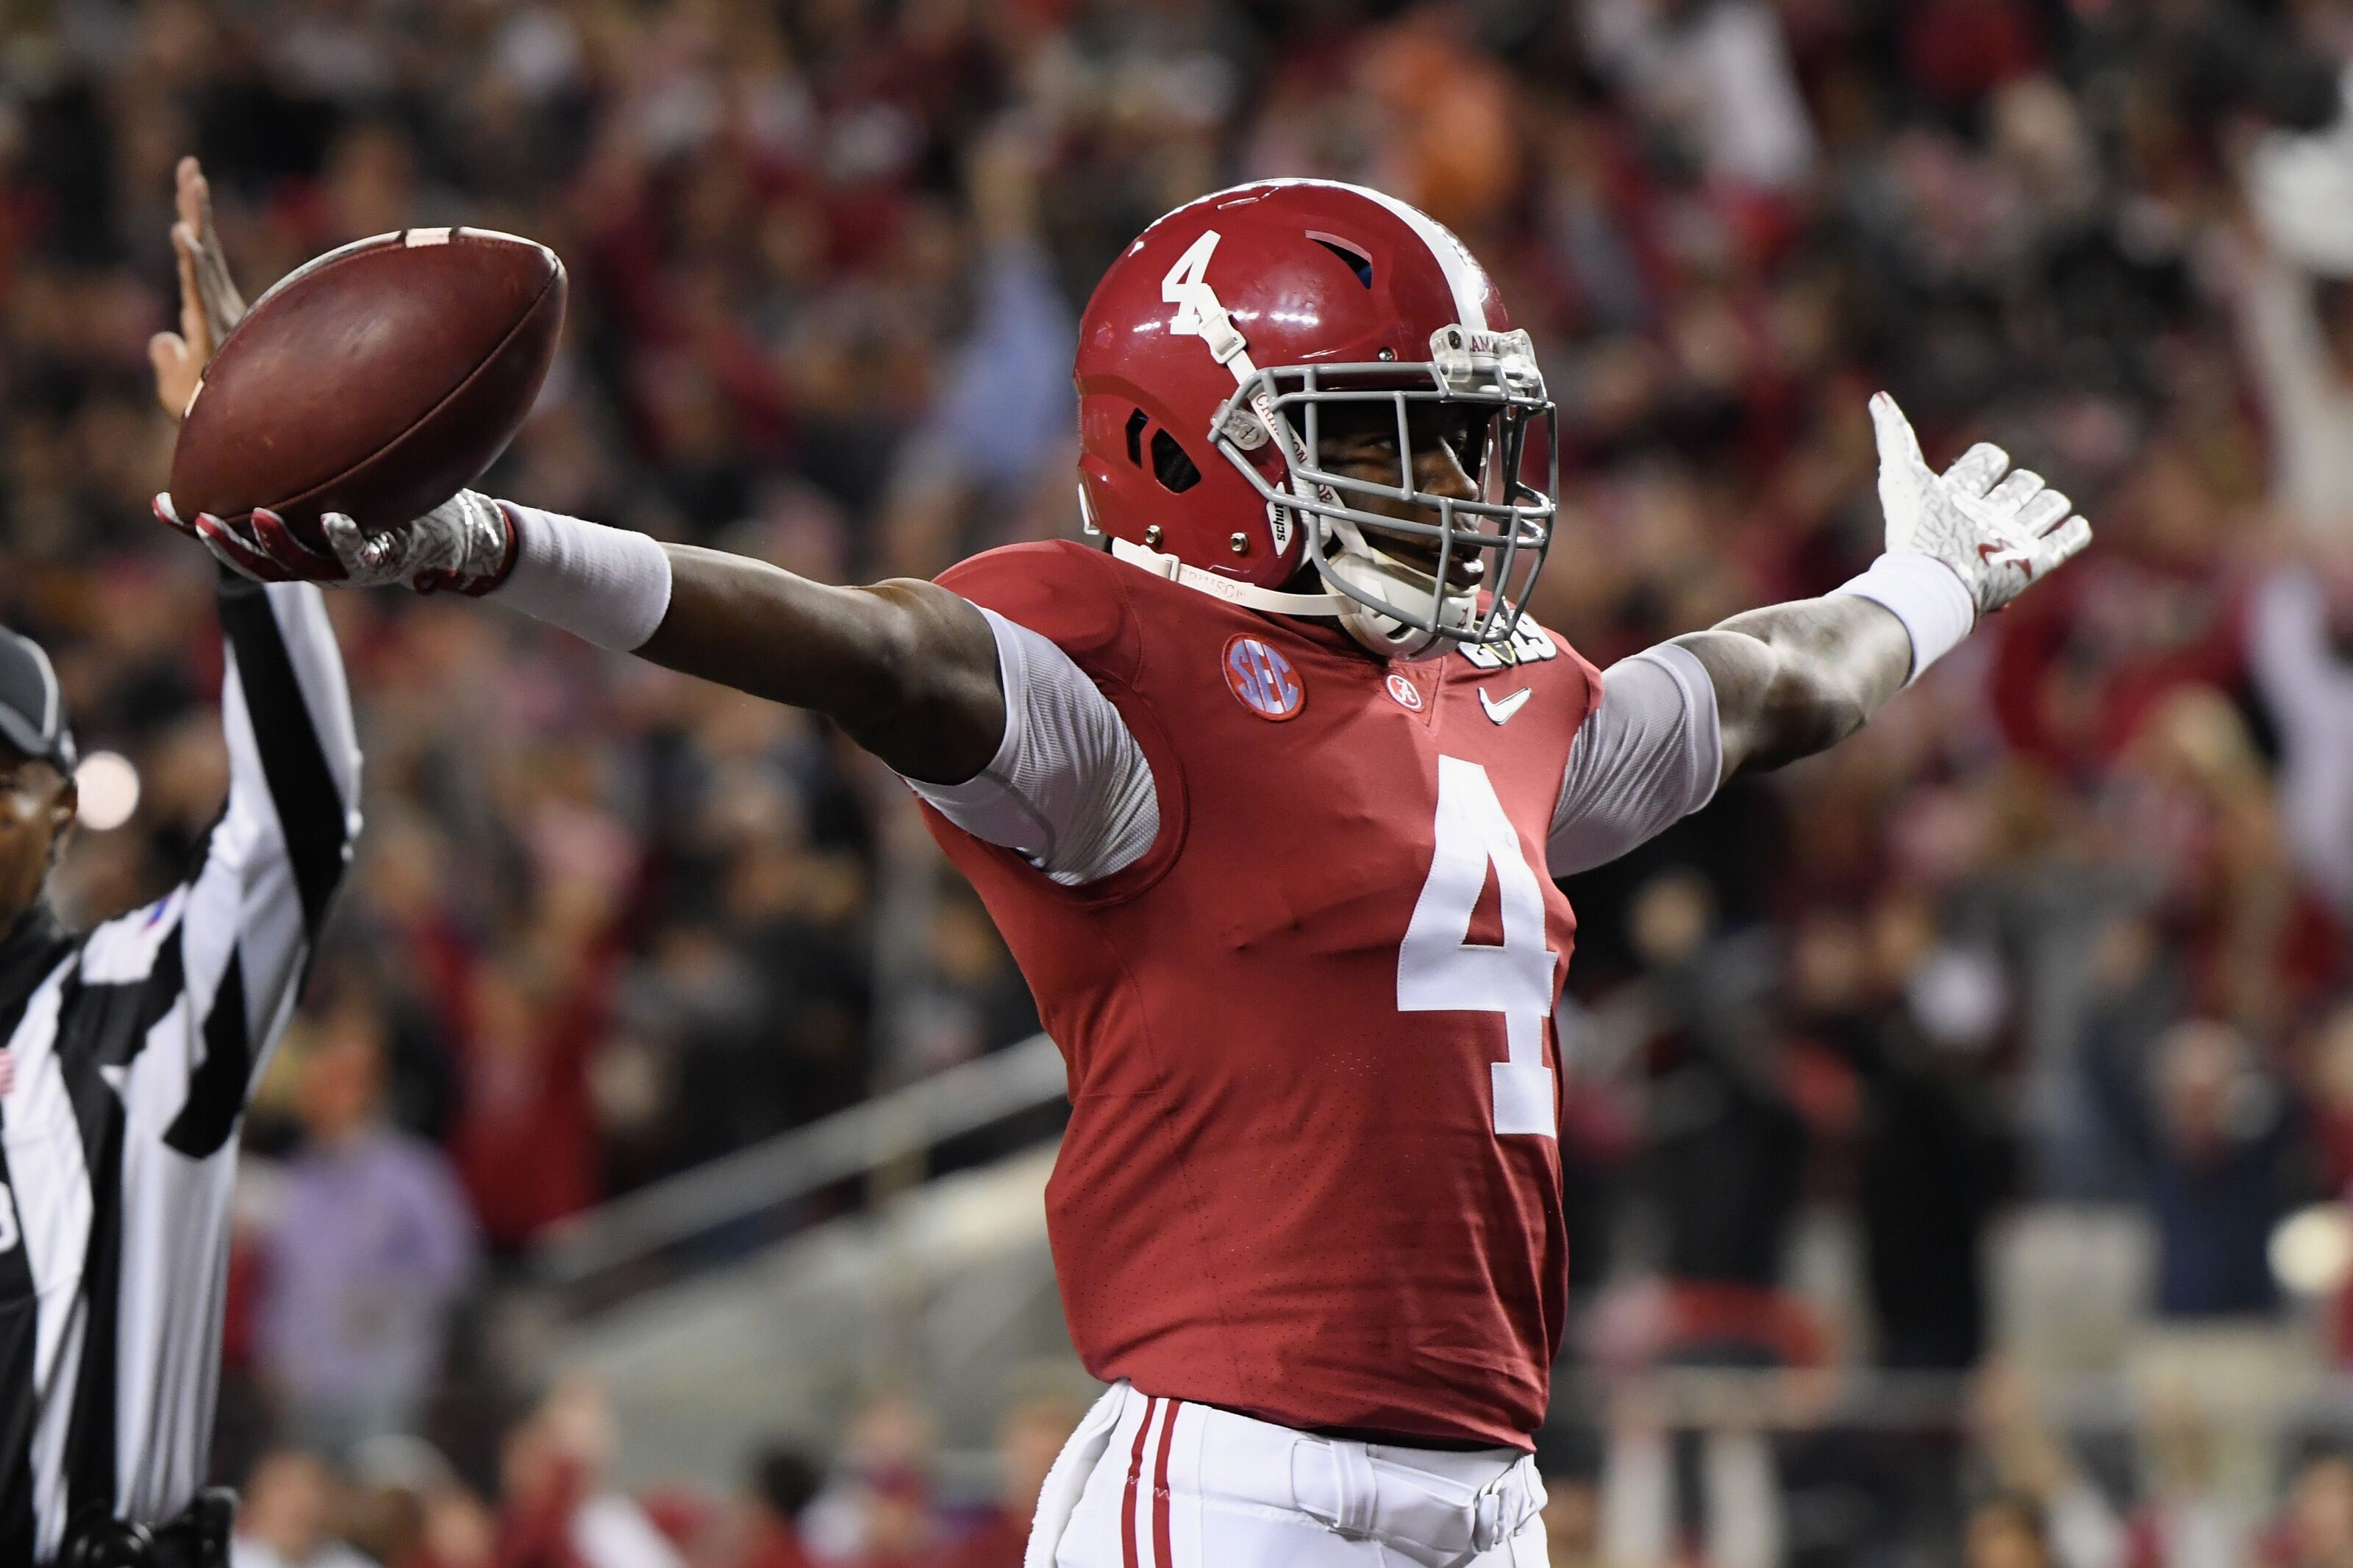 College football Week 7 schedule: Straight-up picks for Top 25 games